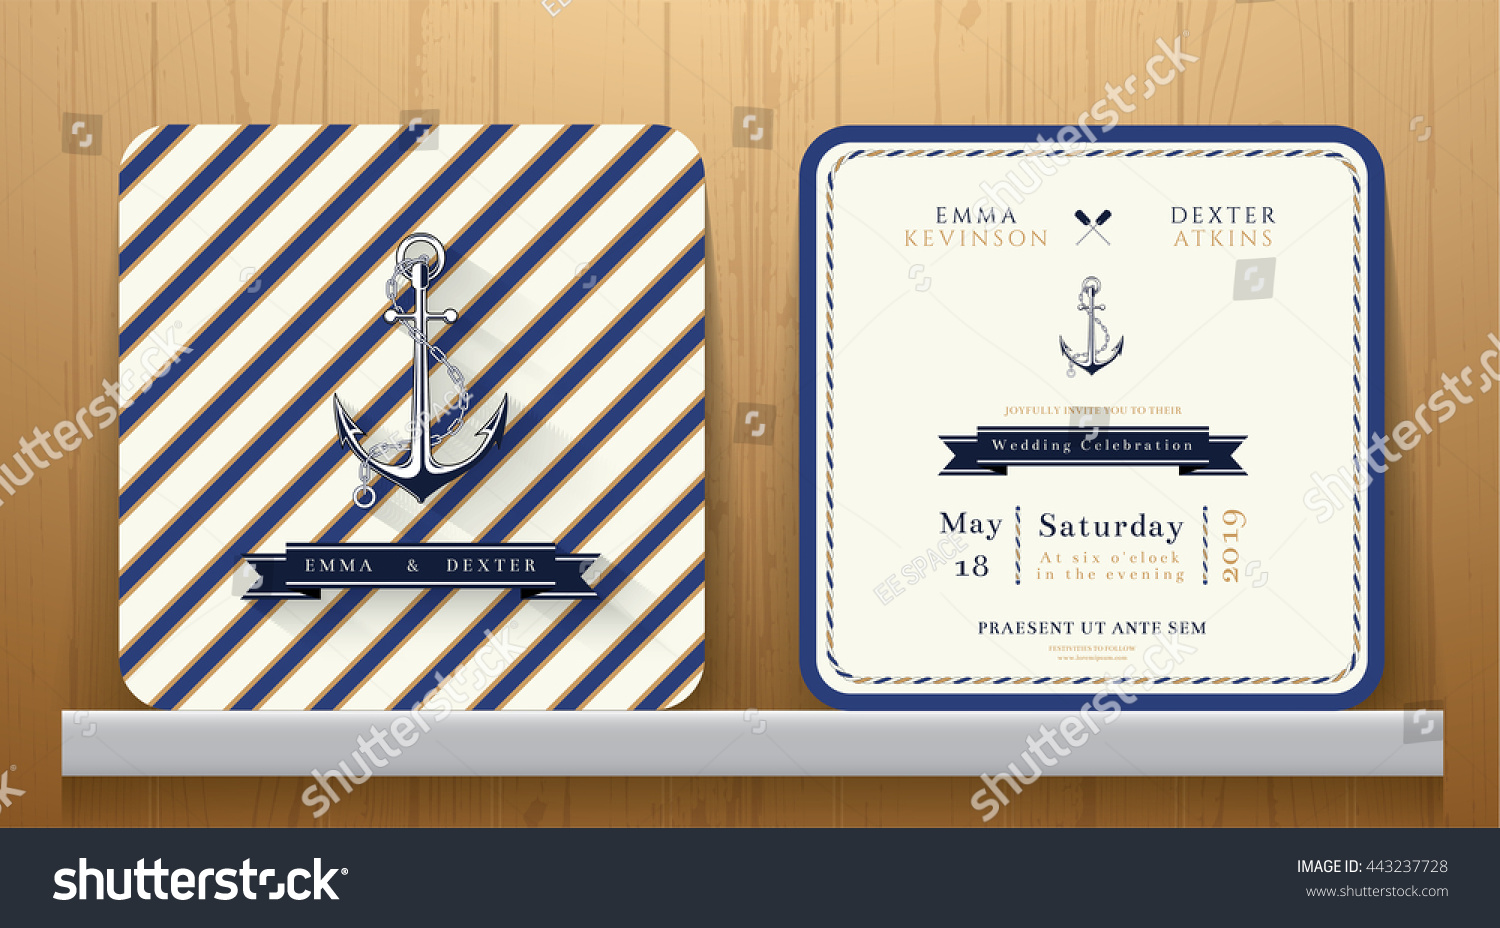 Wedding Invite Card Stock: Vintage Nautical Anchors Wedding Invitation Card Stock